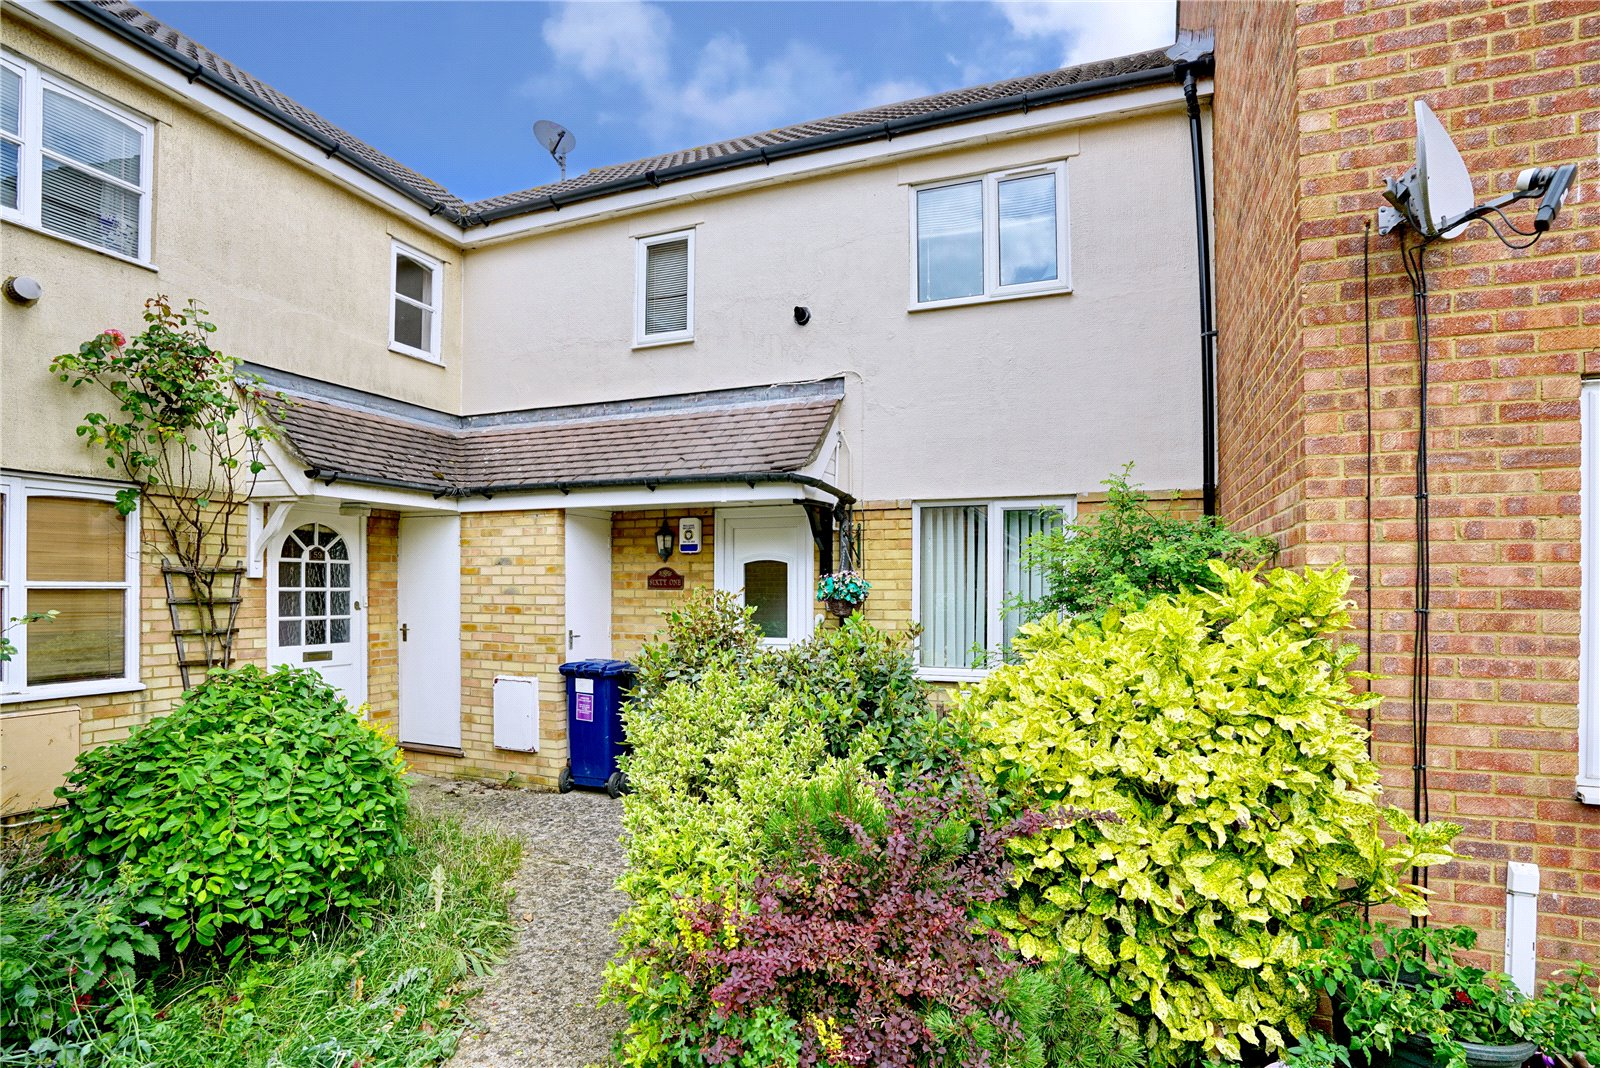 2 bed house for sale in Begwary Close, Eaton Socon, PE19